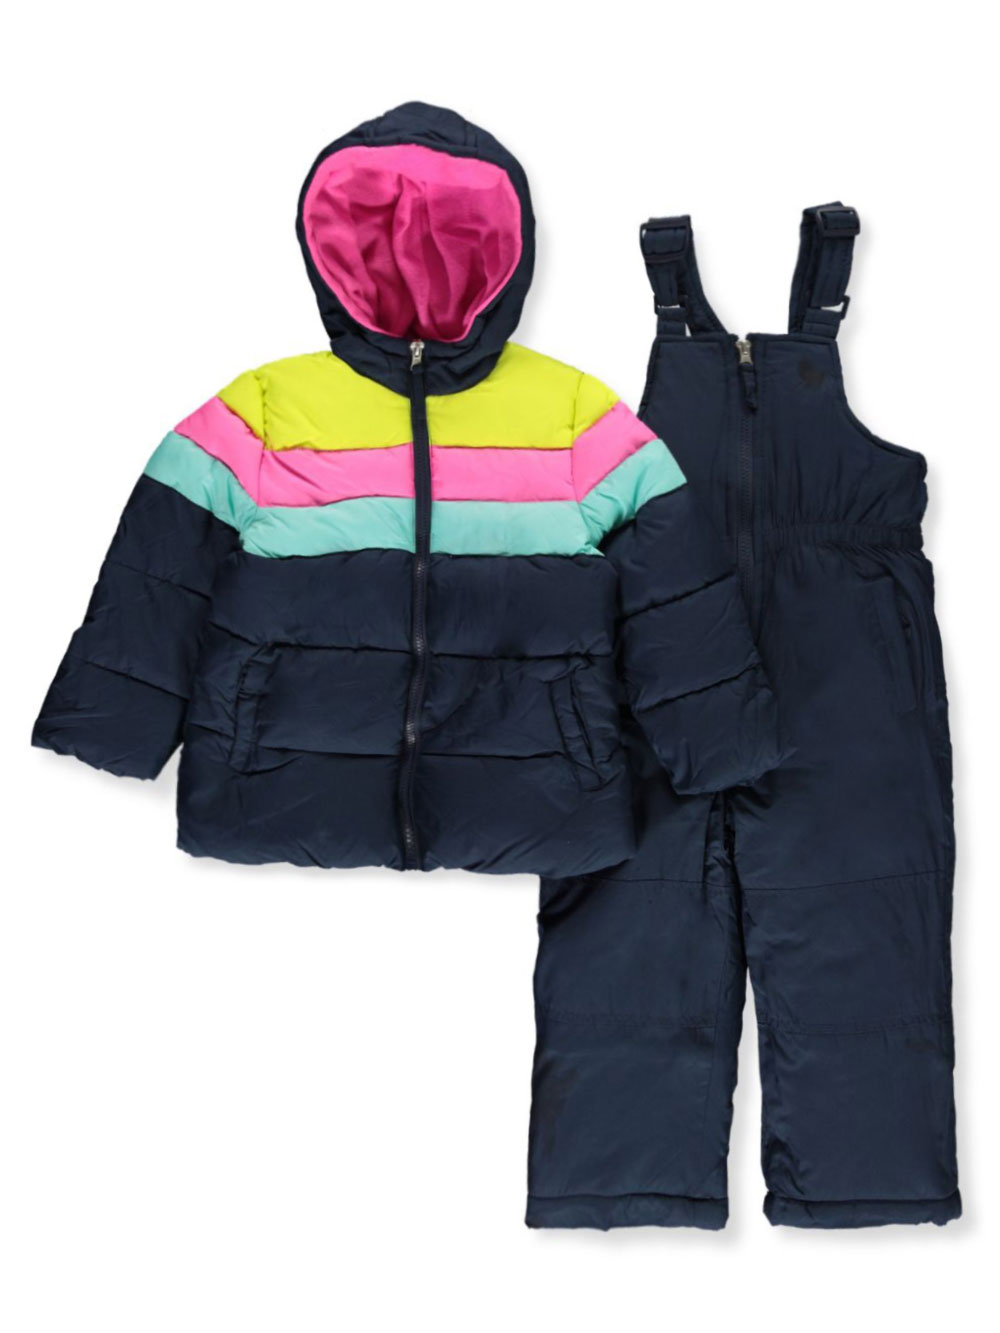 Size 2t Snowsuits for Girls